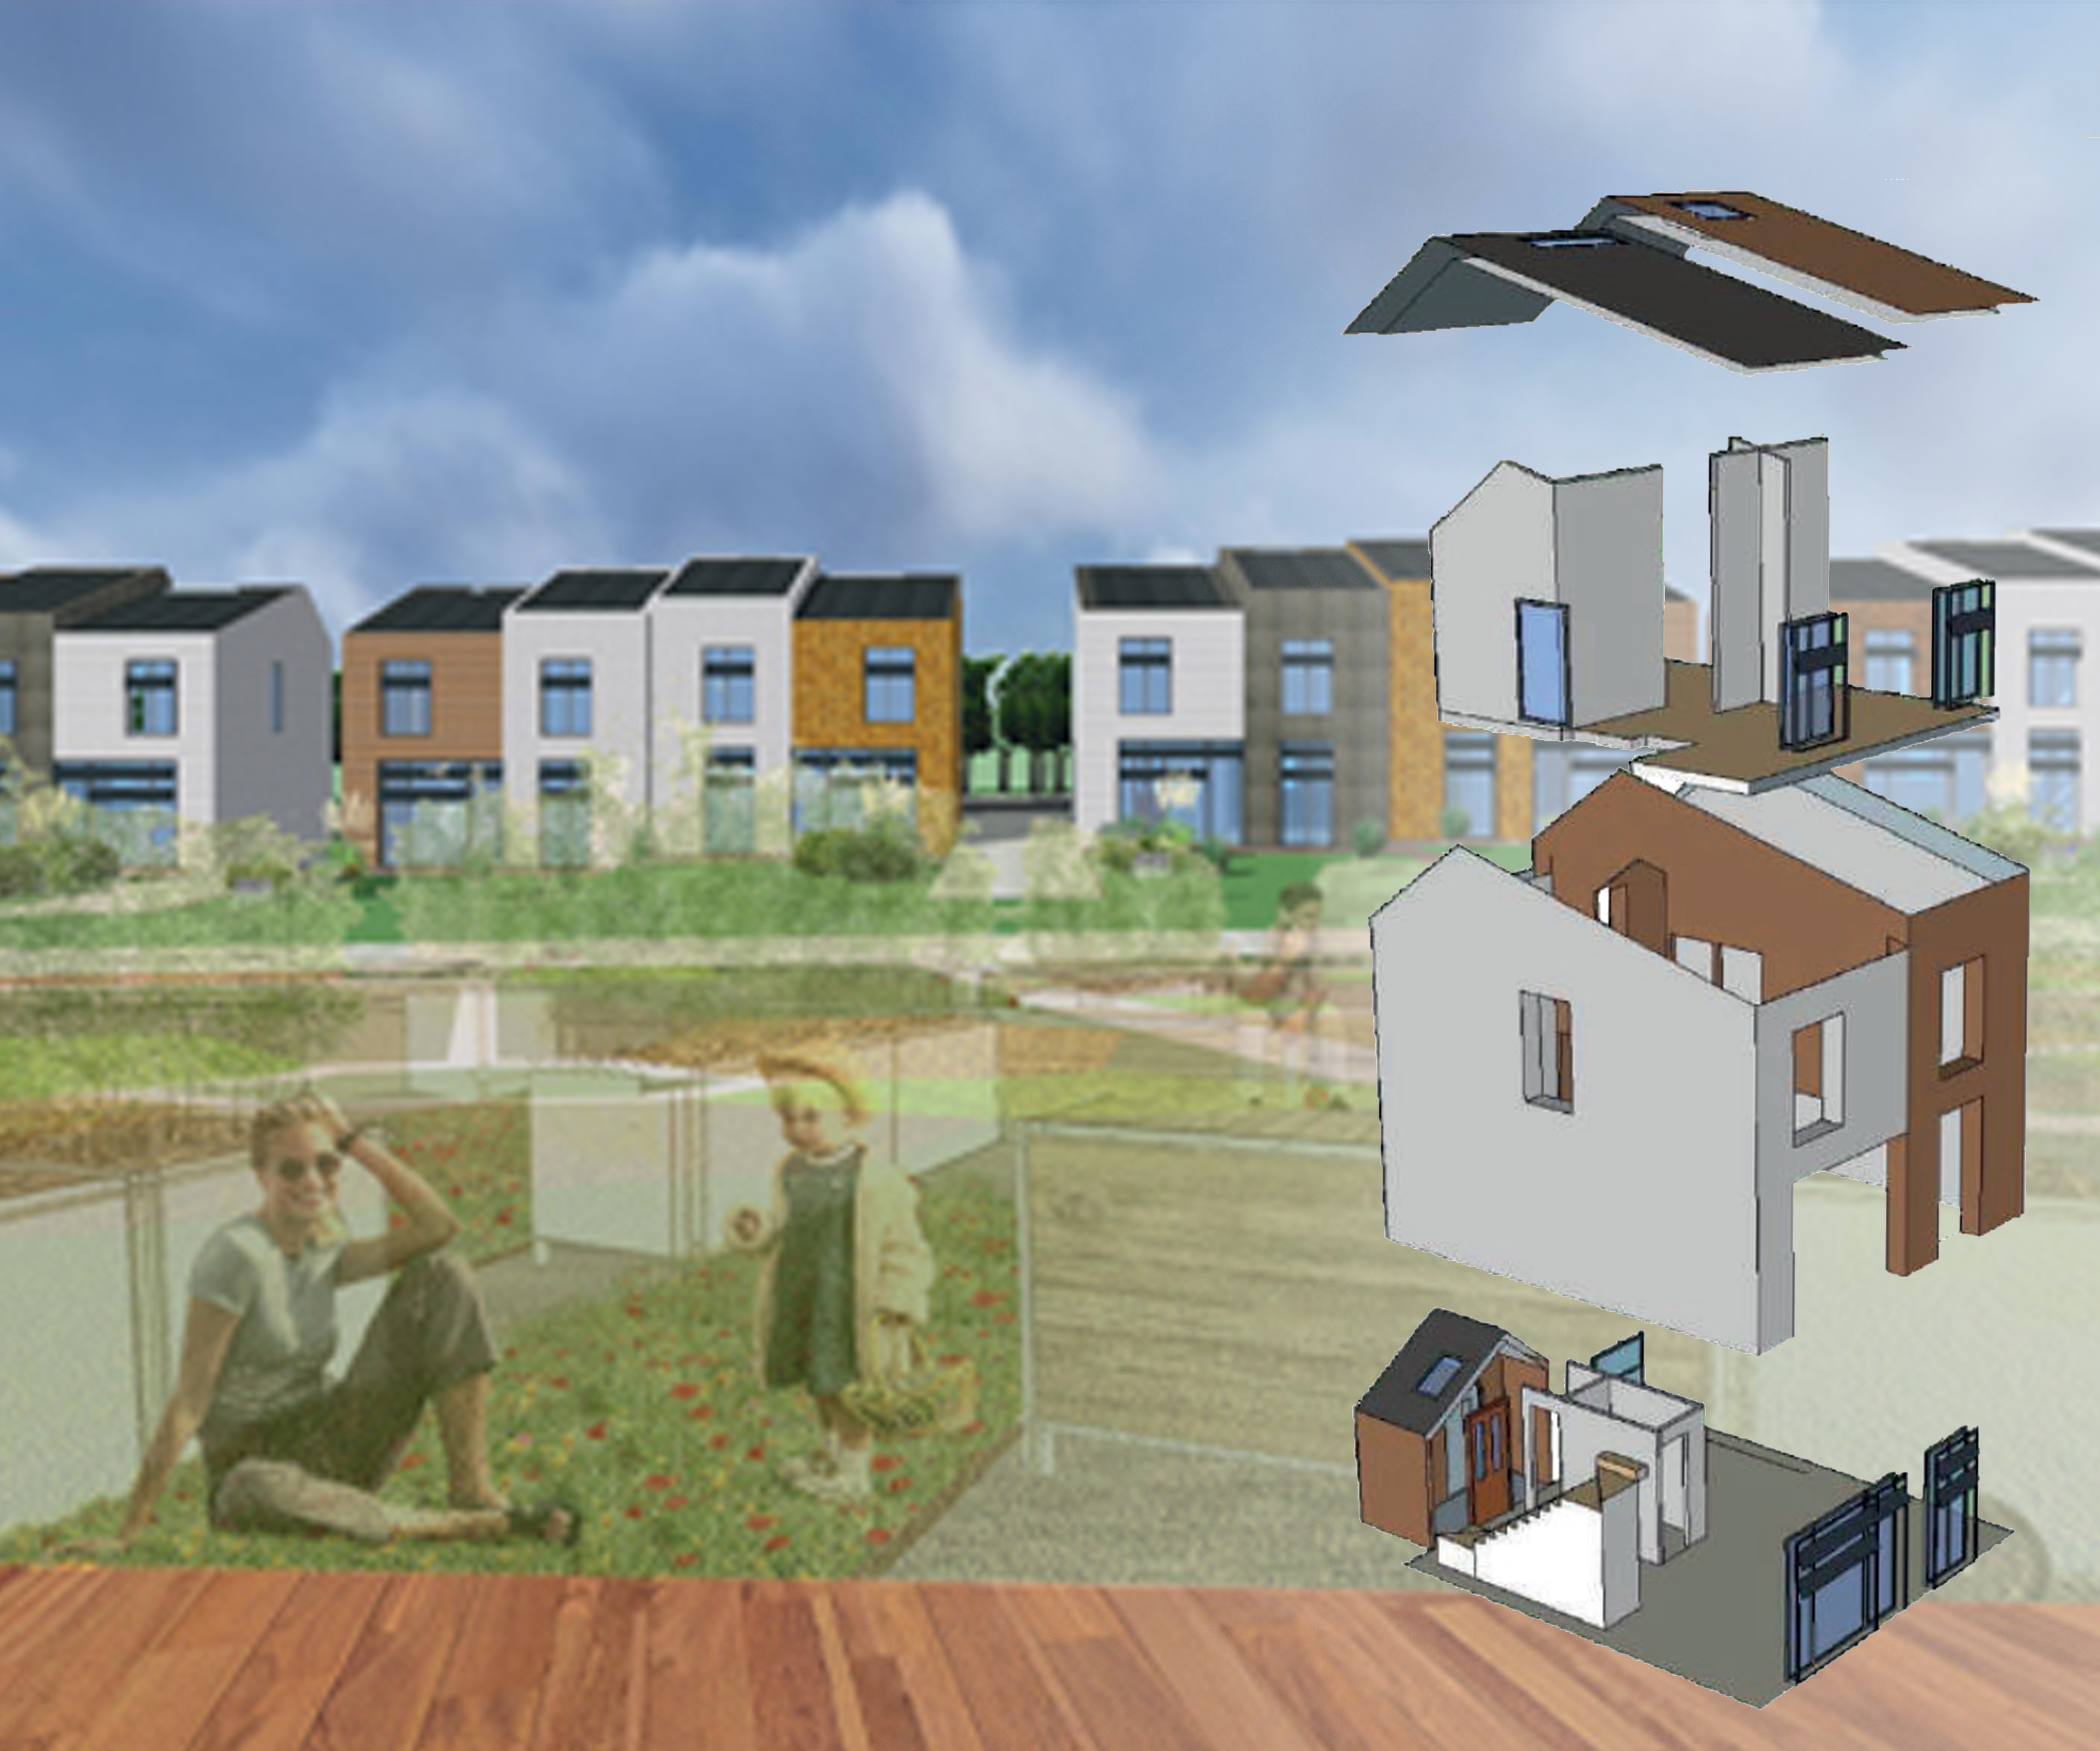 University of Nottingham_Andres Guamani Rodriguez_Carbon Neutral Residential Development